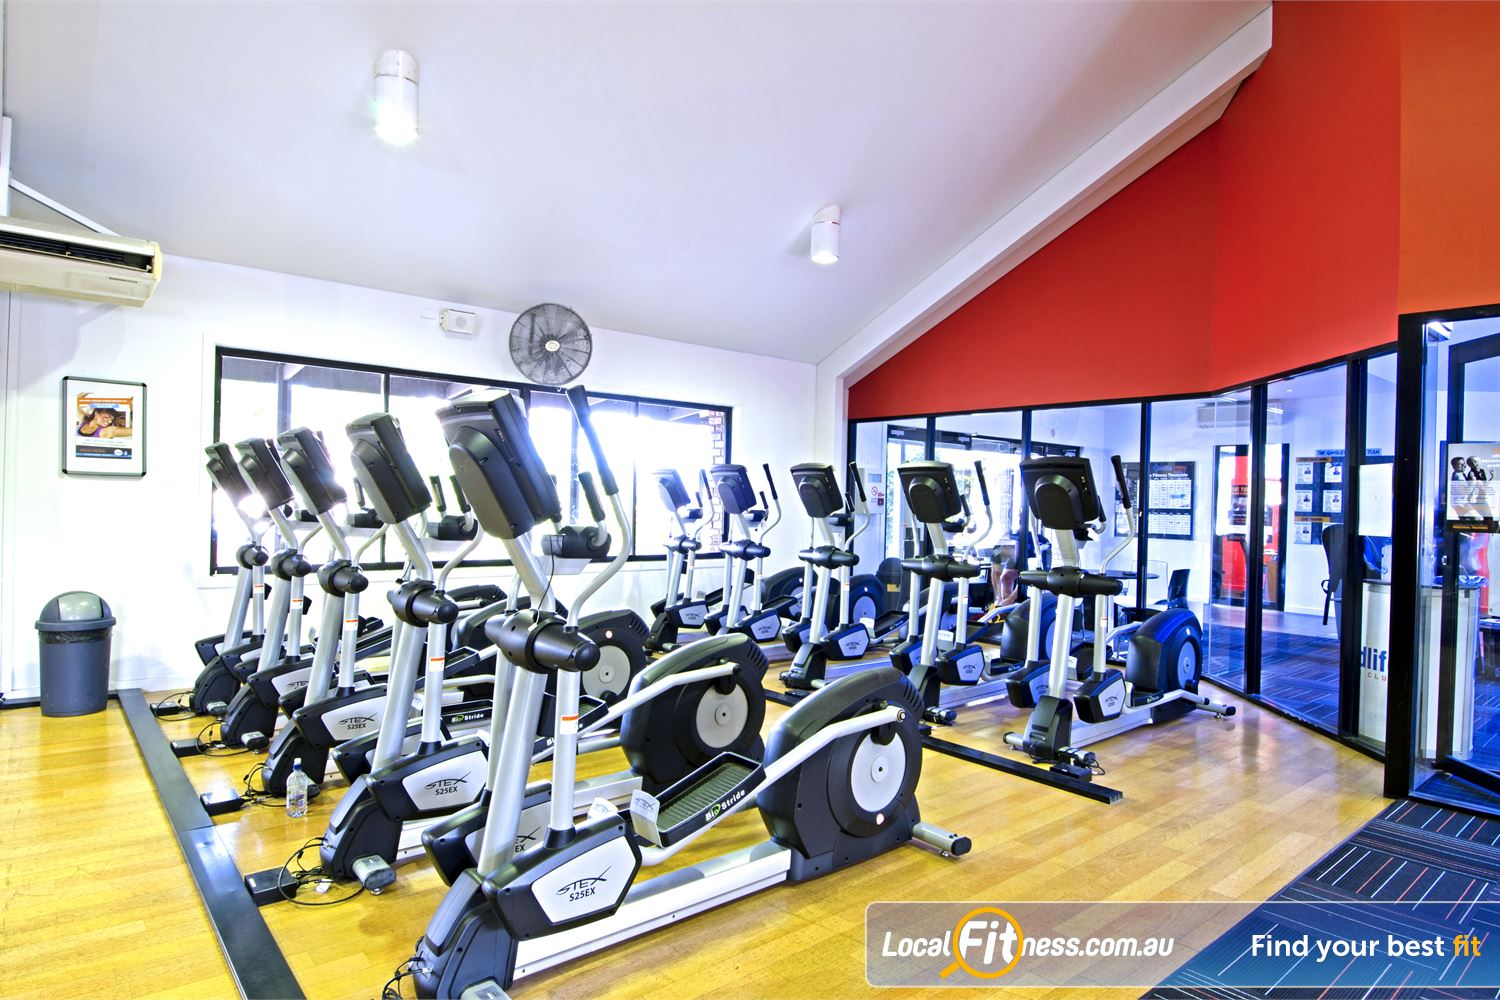 Goodlife Health Clubs Carseldine Goodlife Carseldine gym provides multiple machines so you don't have to wait.